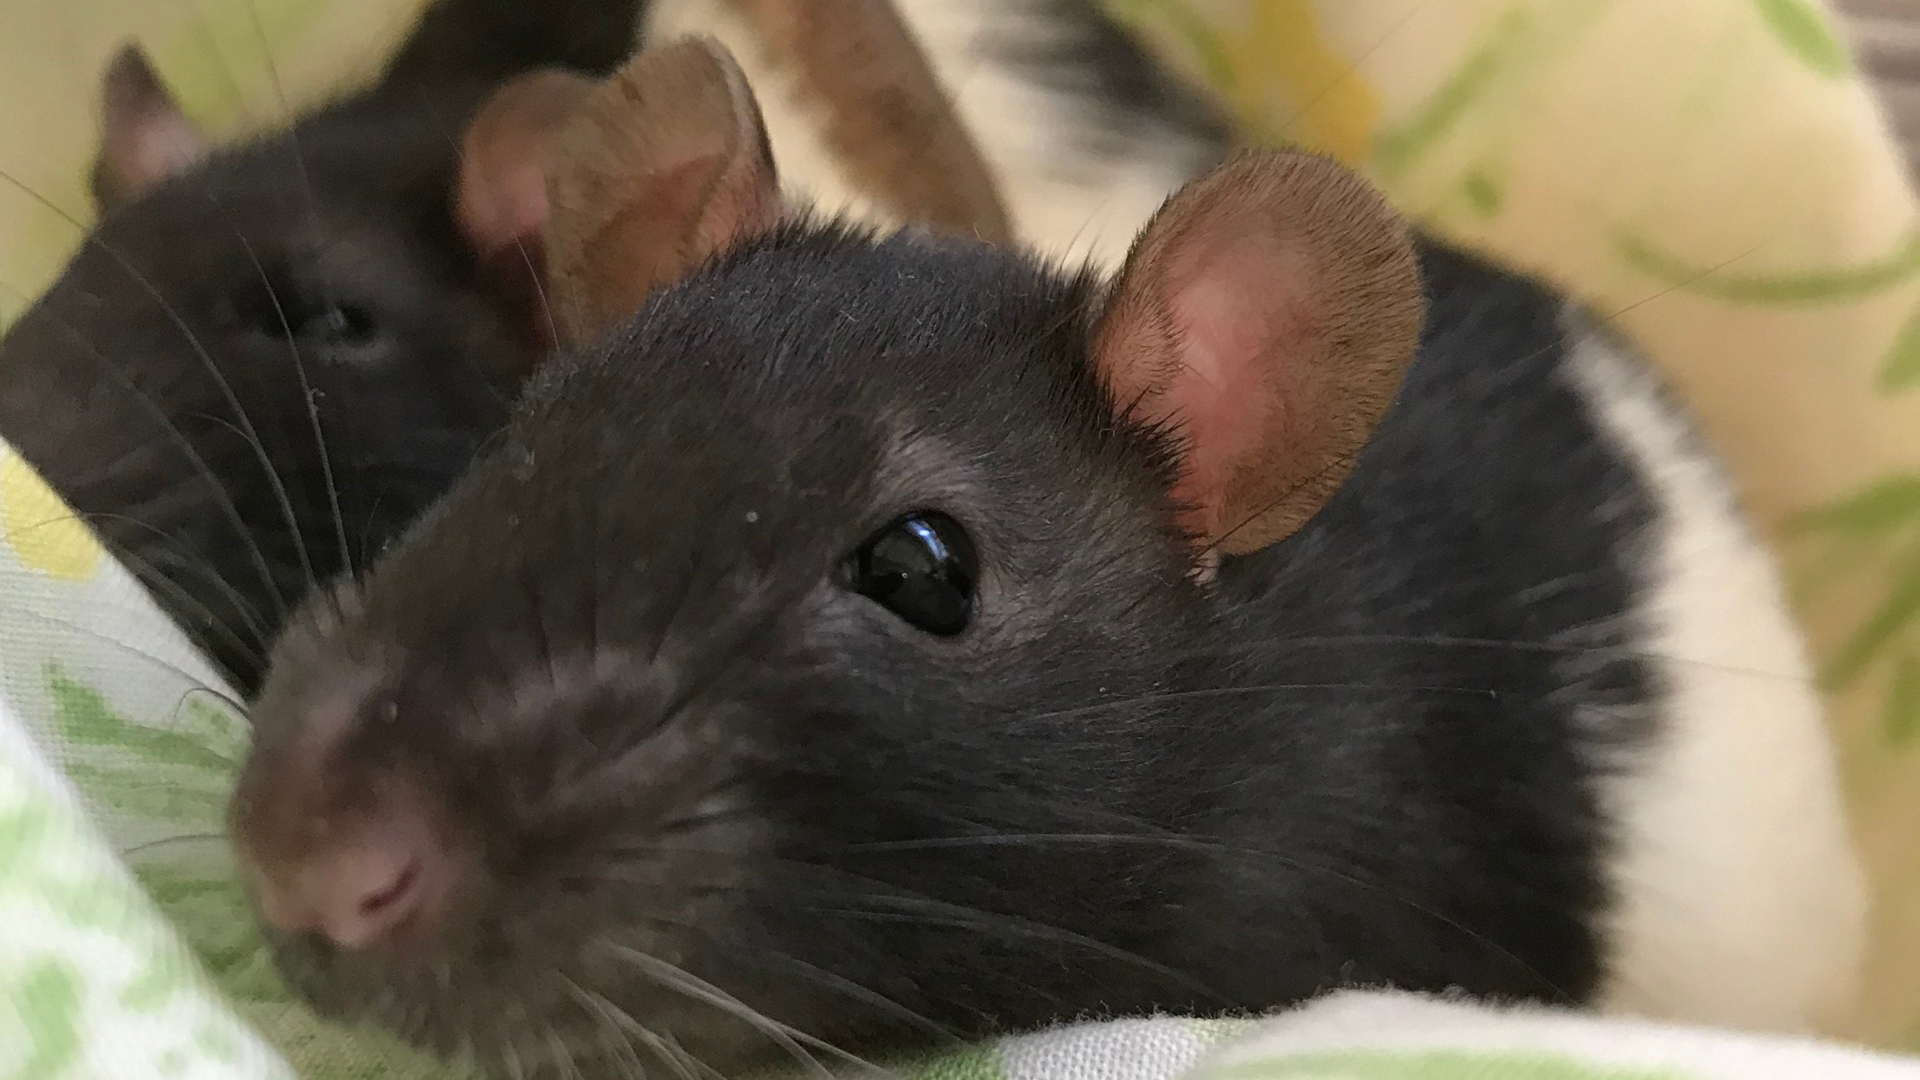 A rat at the San Diego Humane Society appears in a photo released by the organization on Oct. 17, 2019.